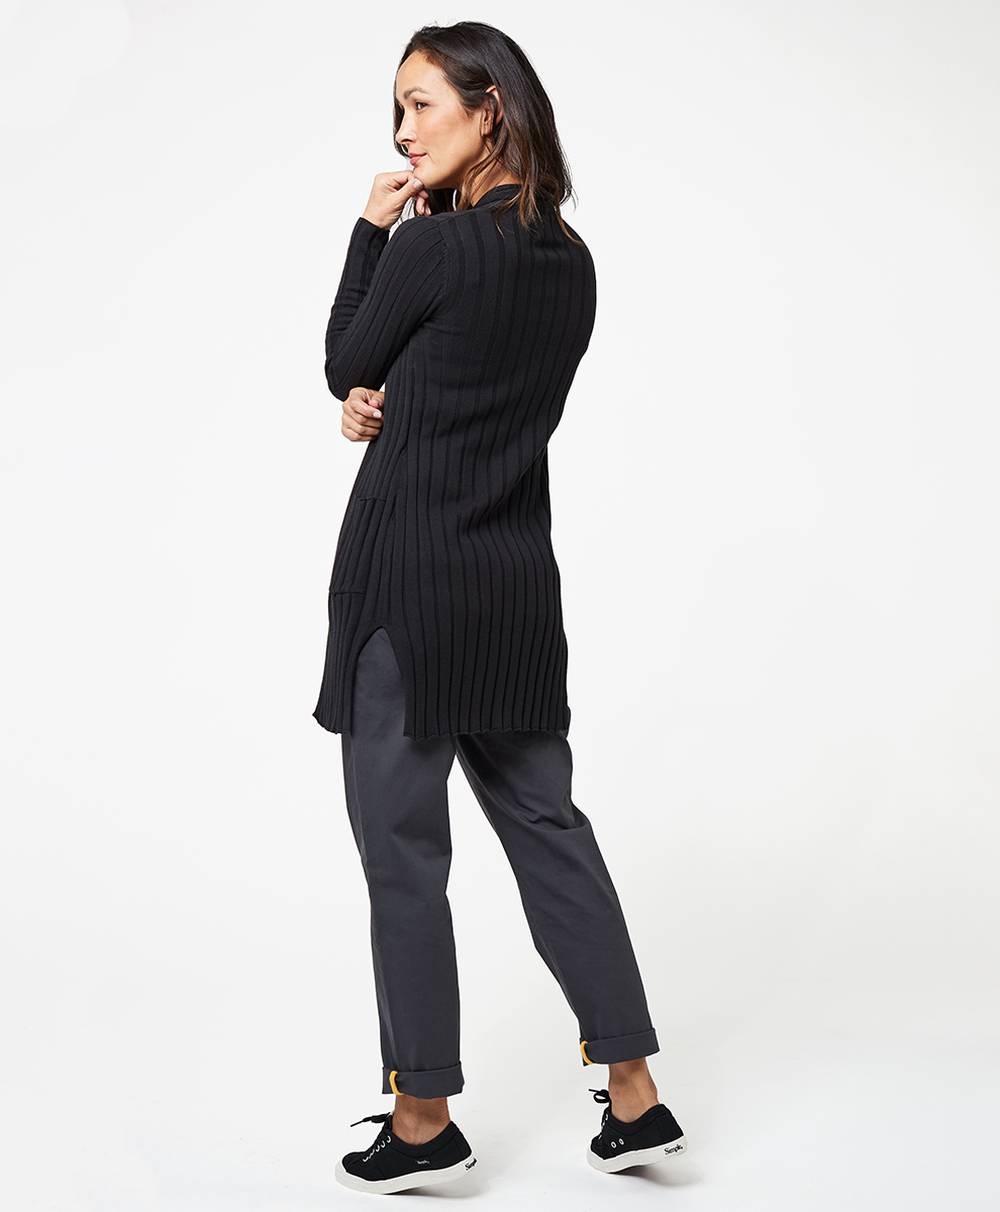 pact work outfits chic casual